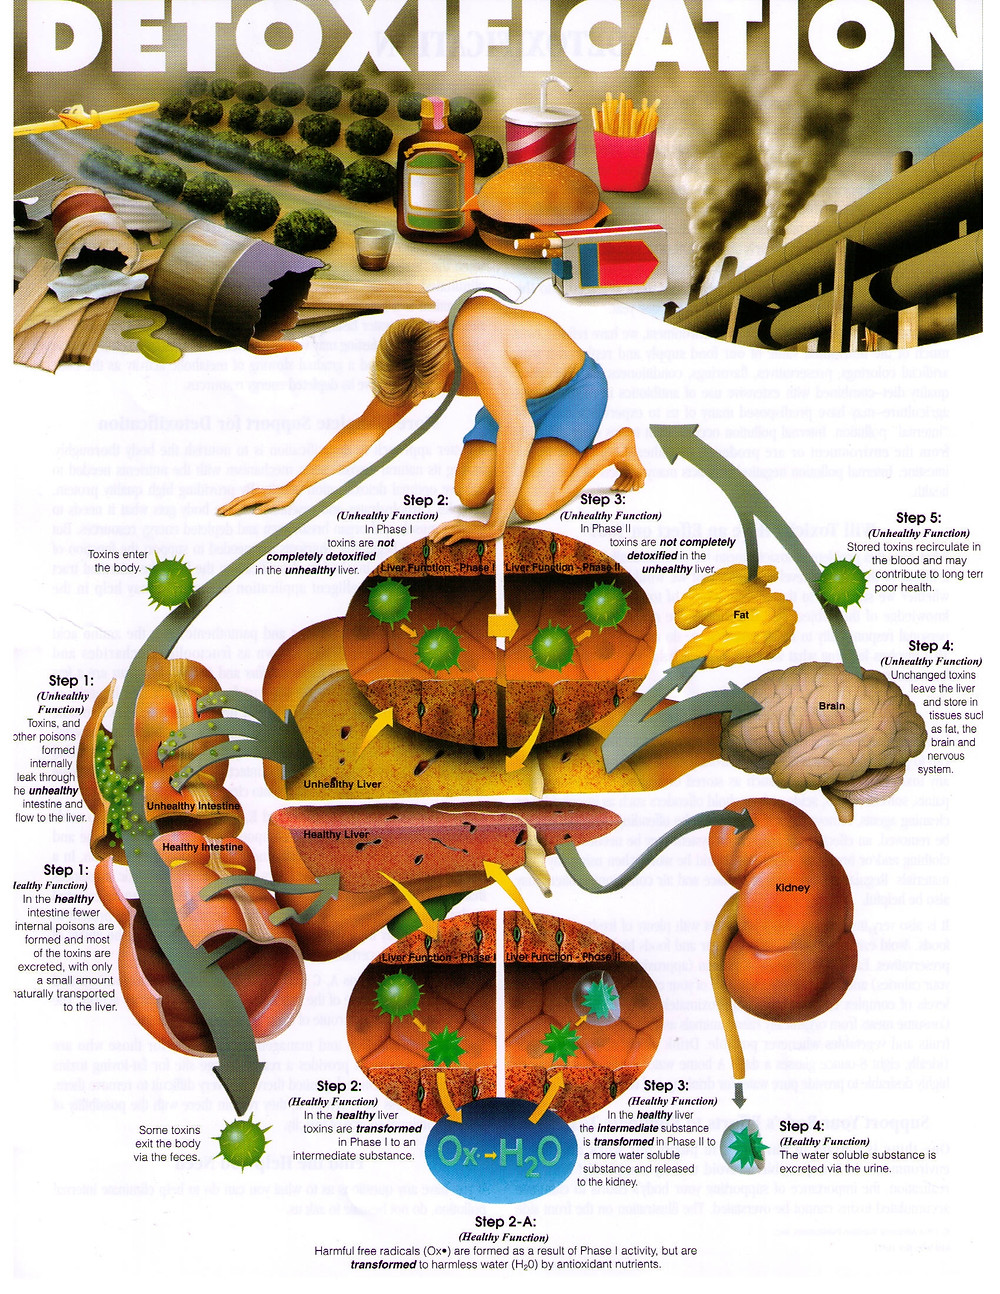 Healthy and unhealthy detoxification pathways in the body